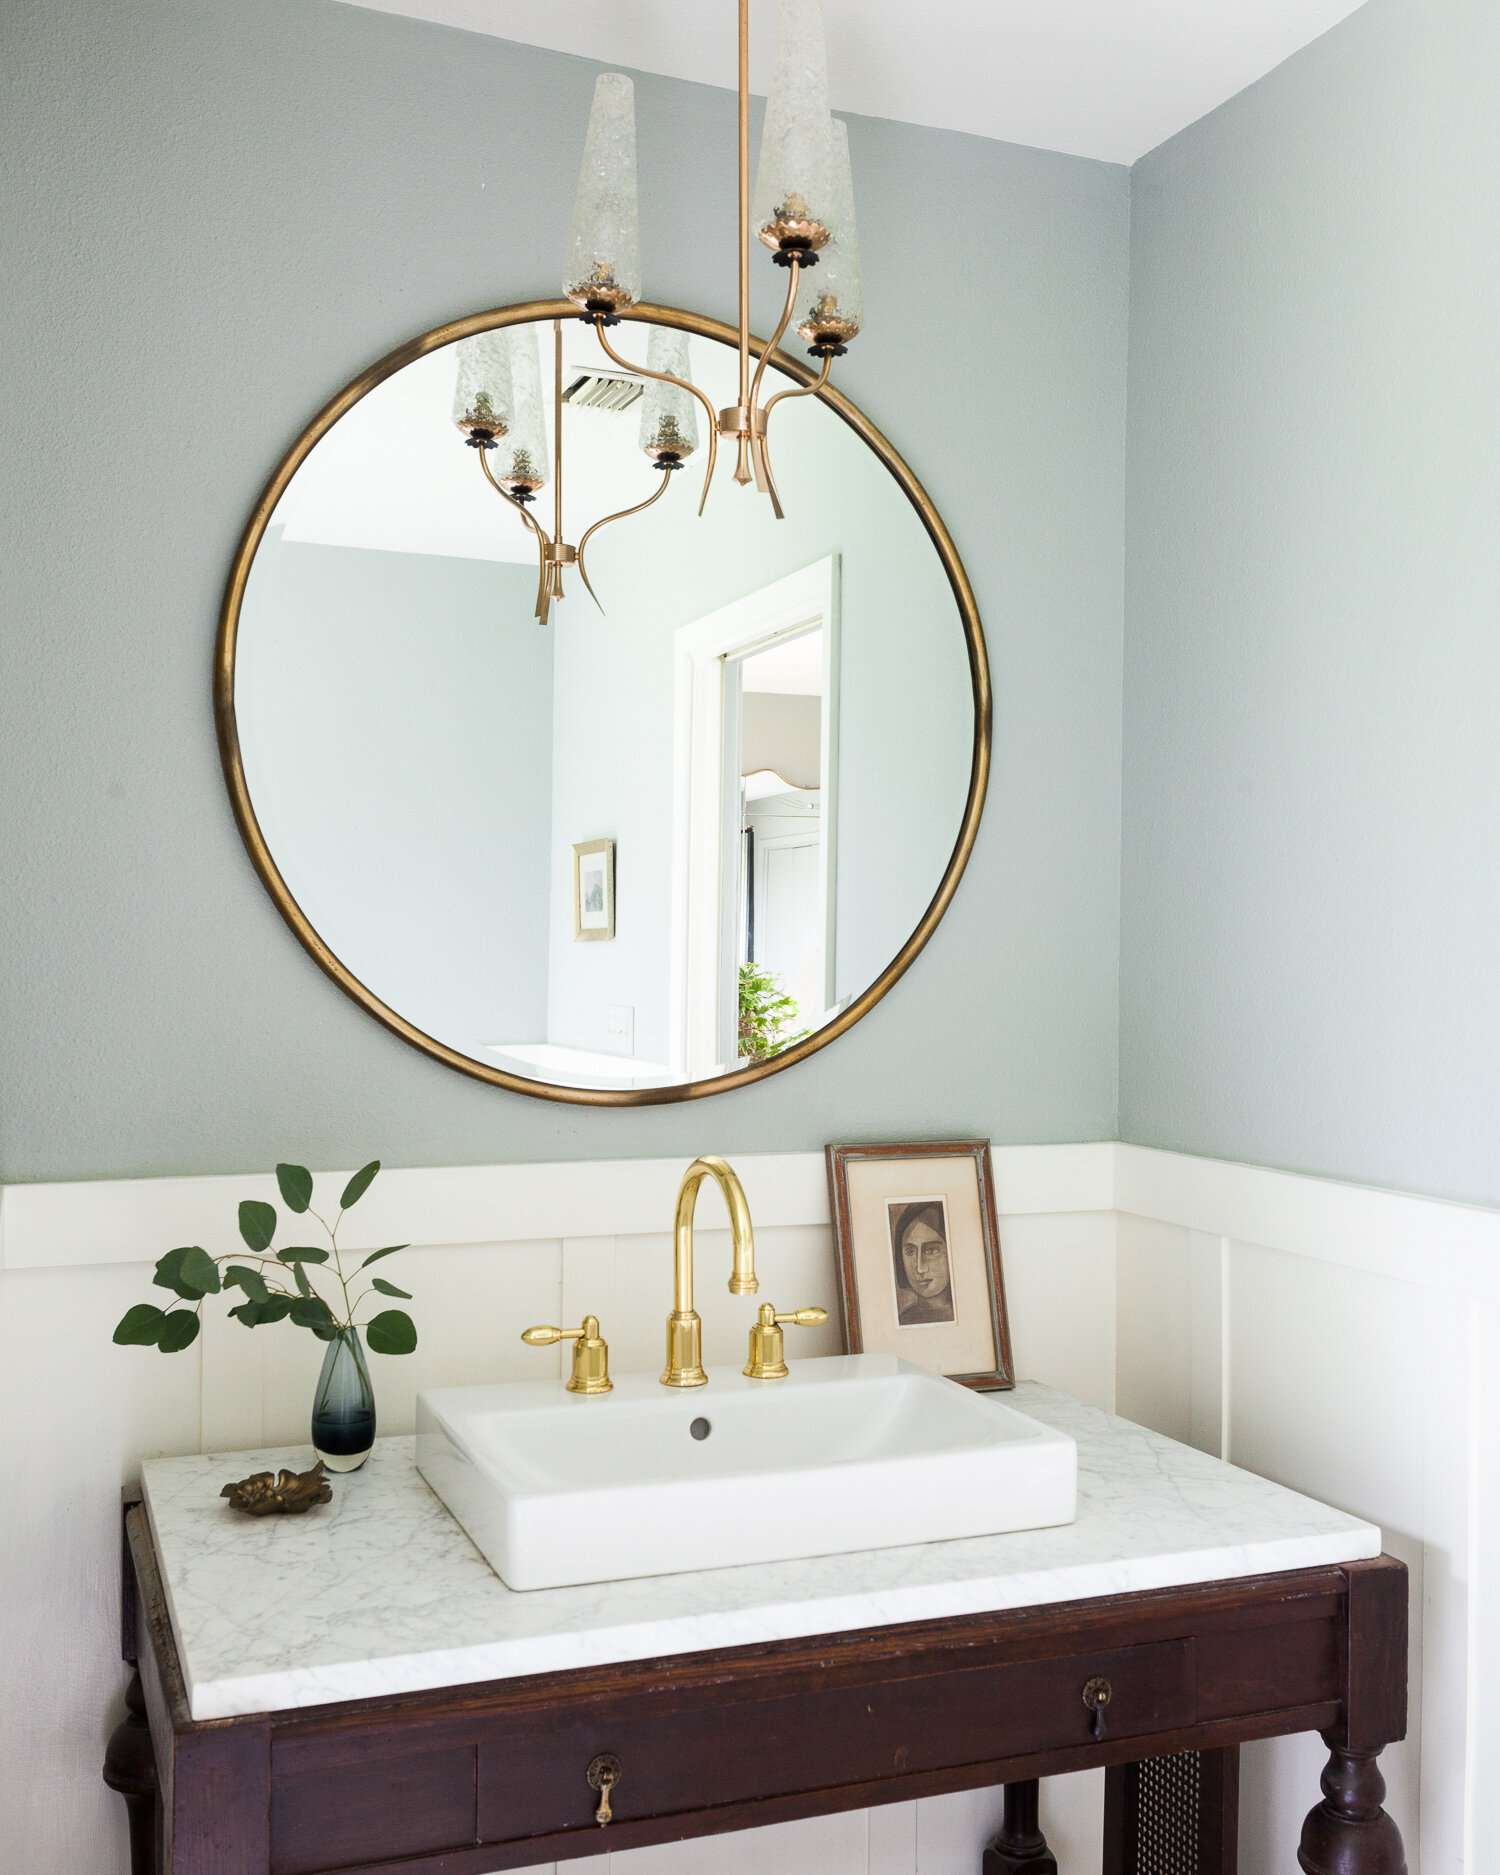 A bathroom with an antique vanity and an extra-small sink